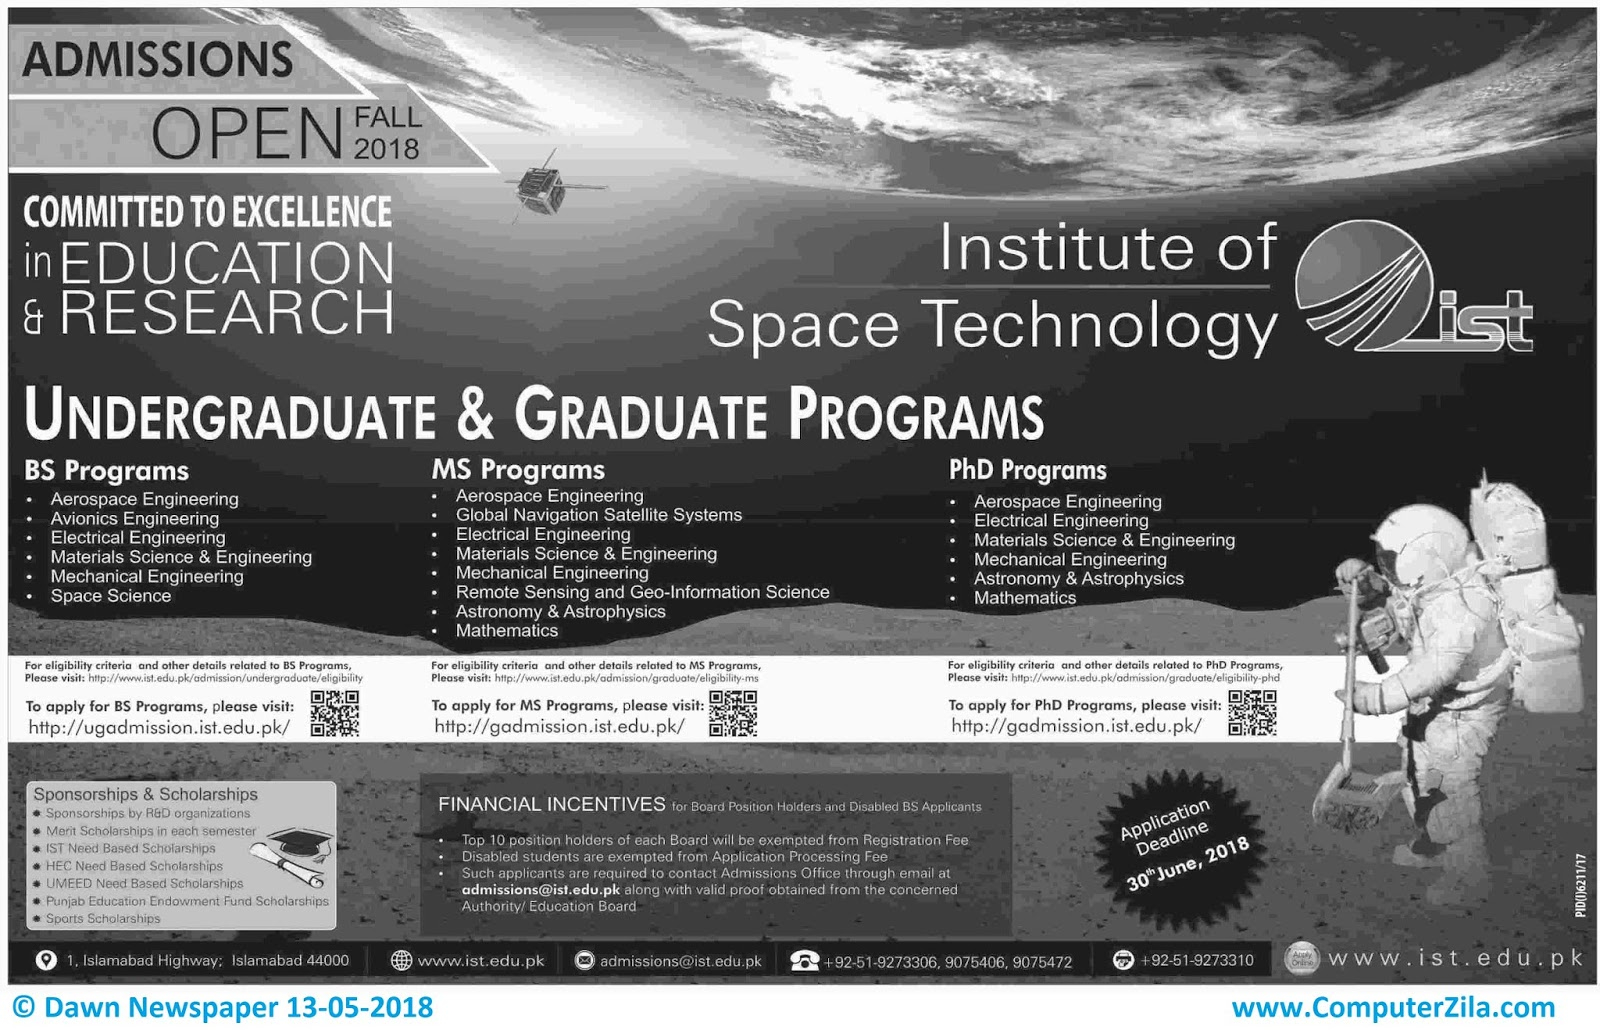 Institute of Space Technology Admissions Fall 2018